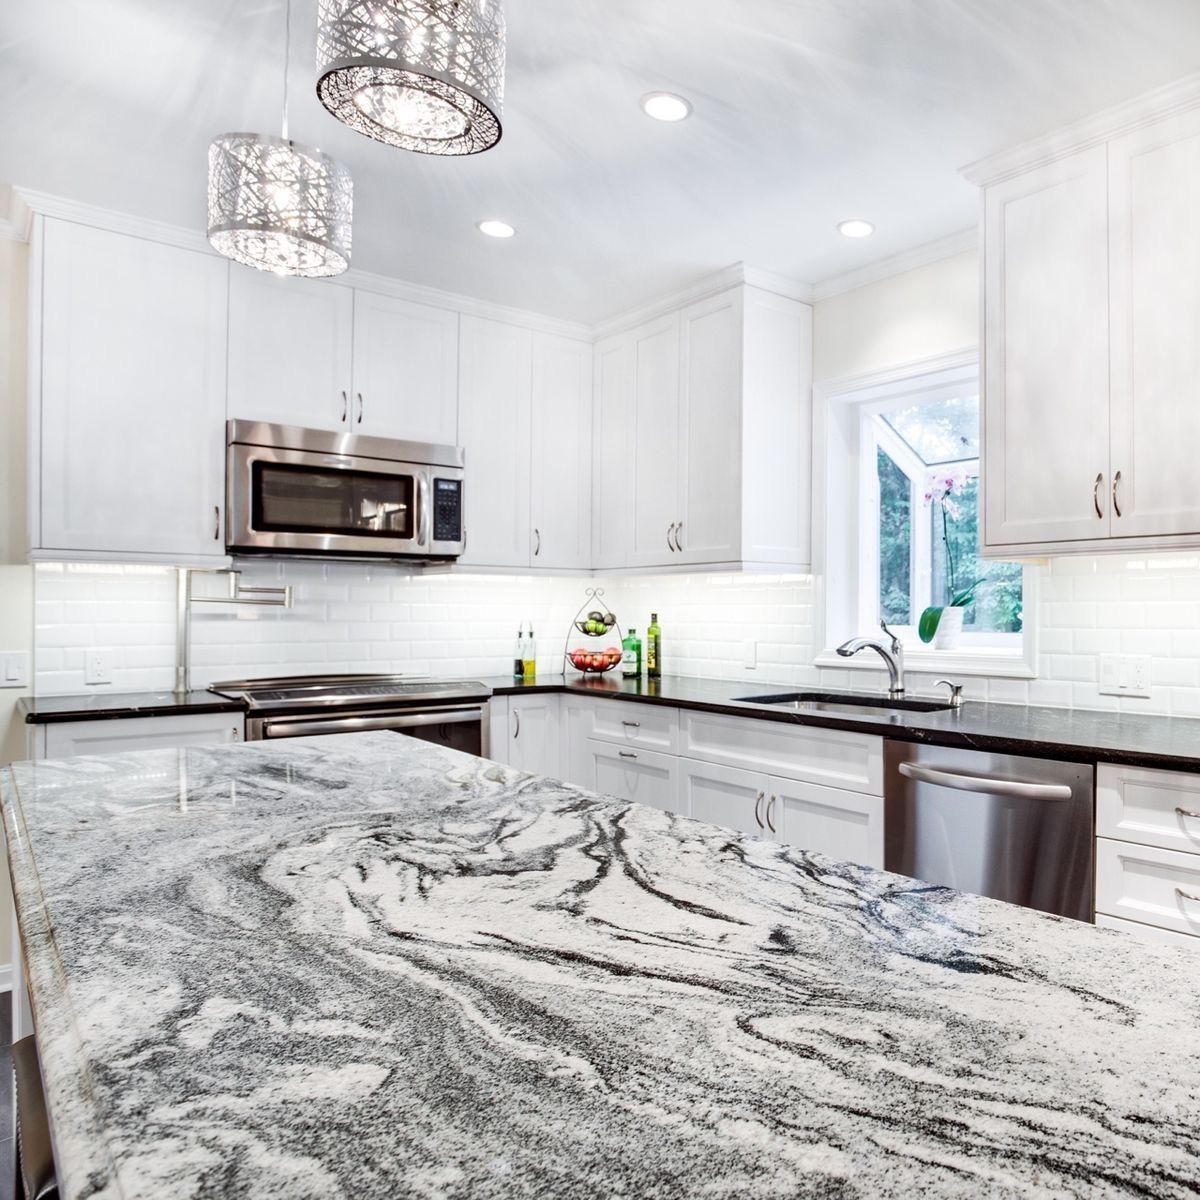 - Viscon White Granite Granite Kitchen Island, Granite Countertops